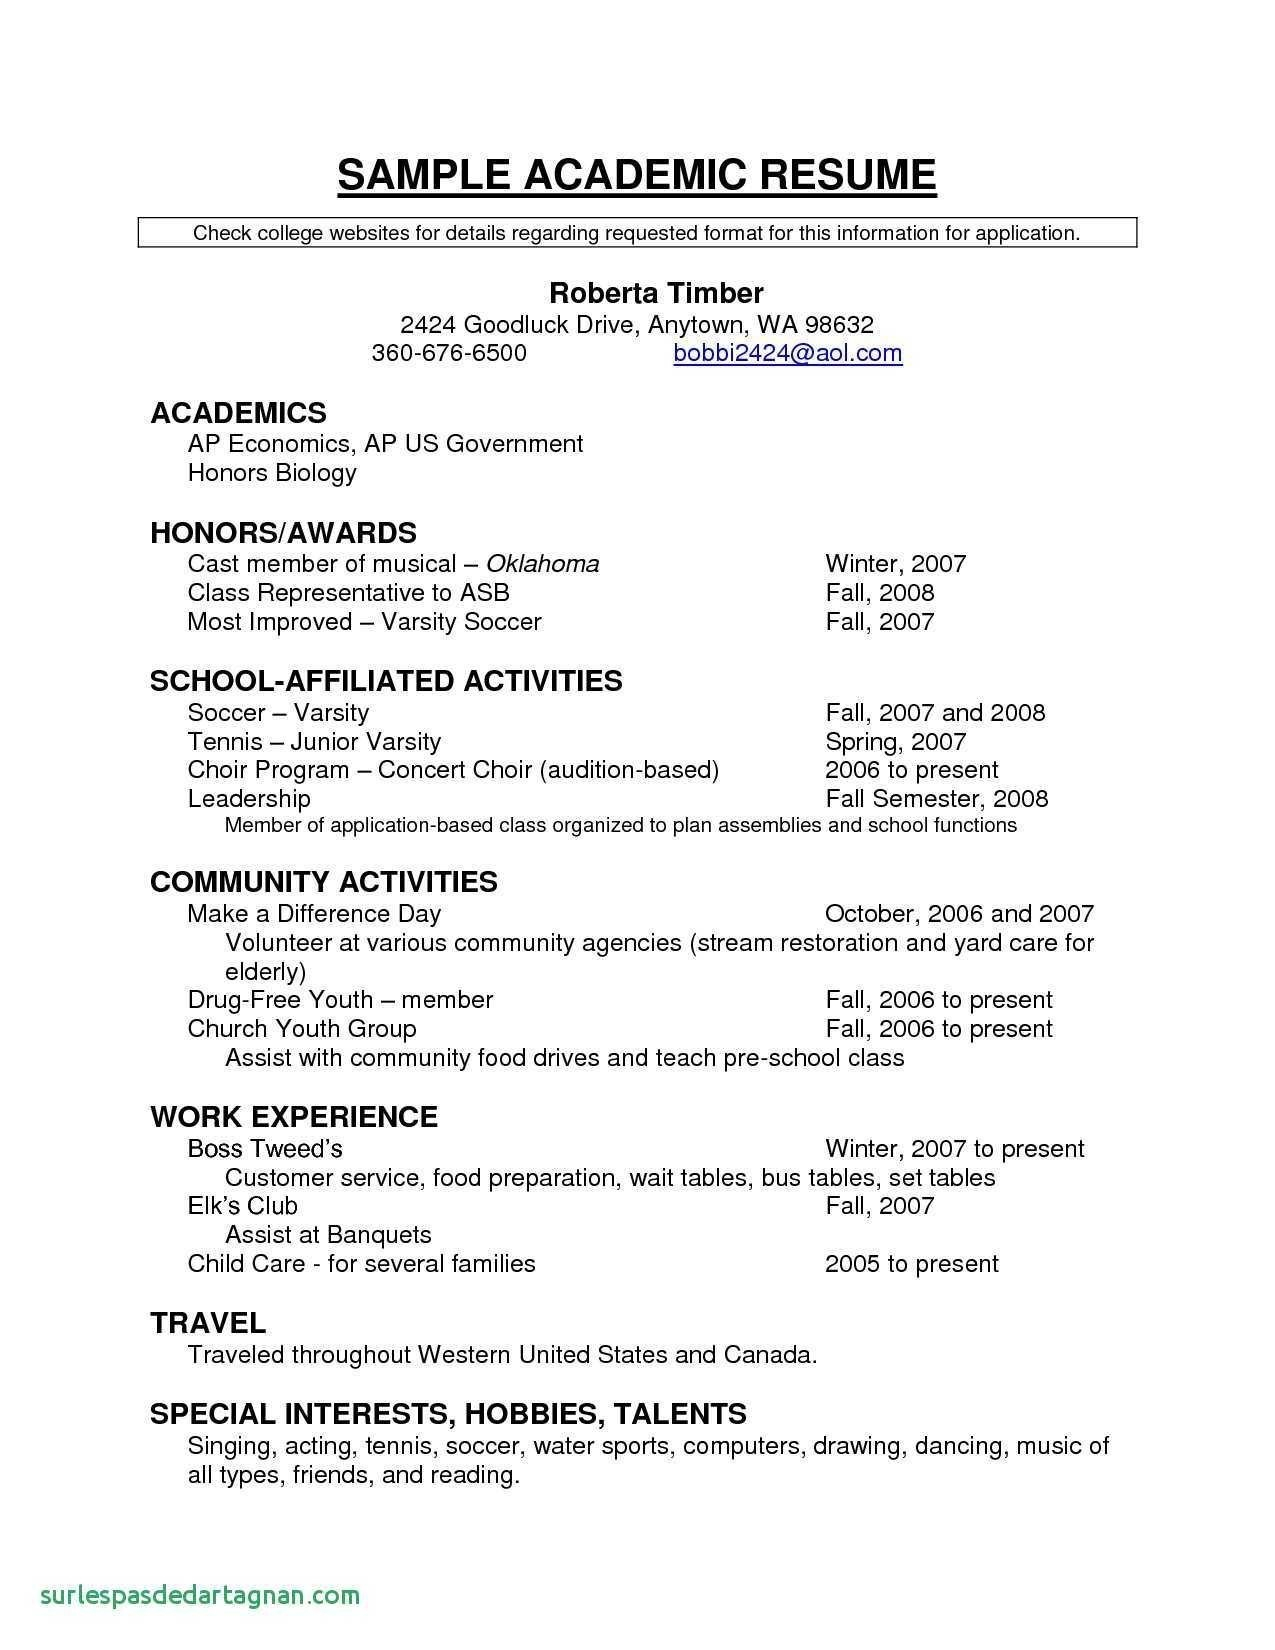 Lawn Care Resume - 30 Awesome Lawn Care Resume